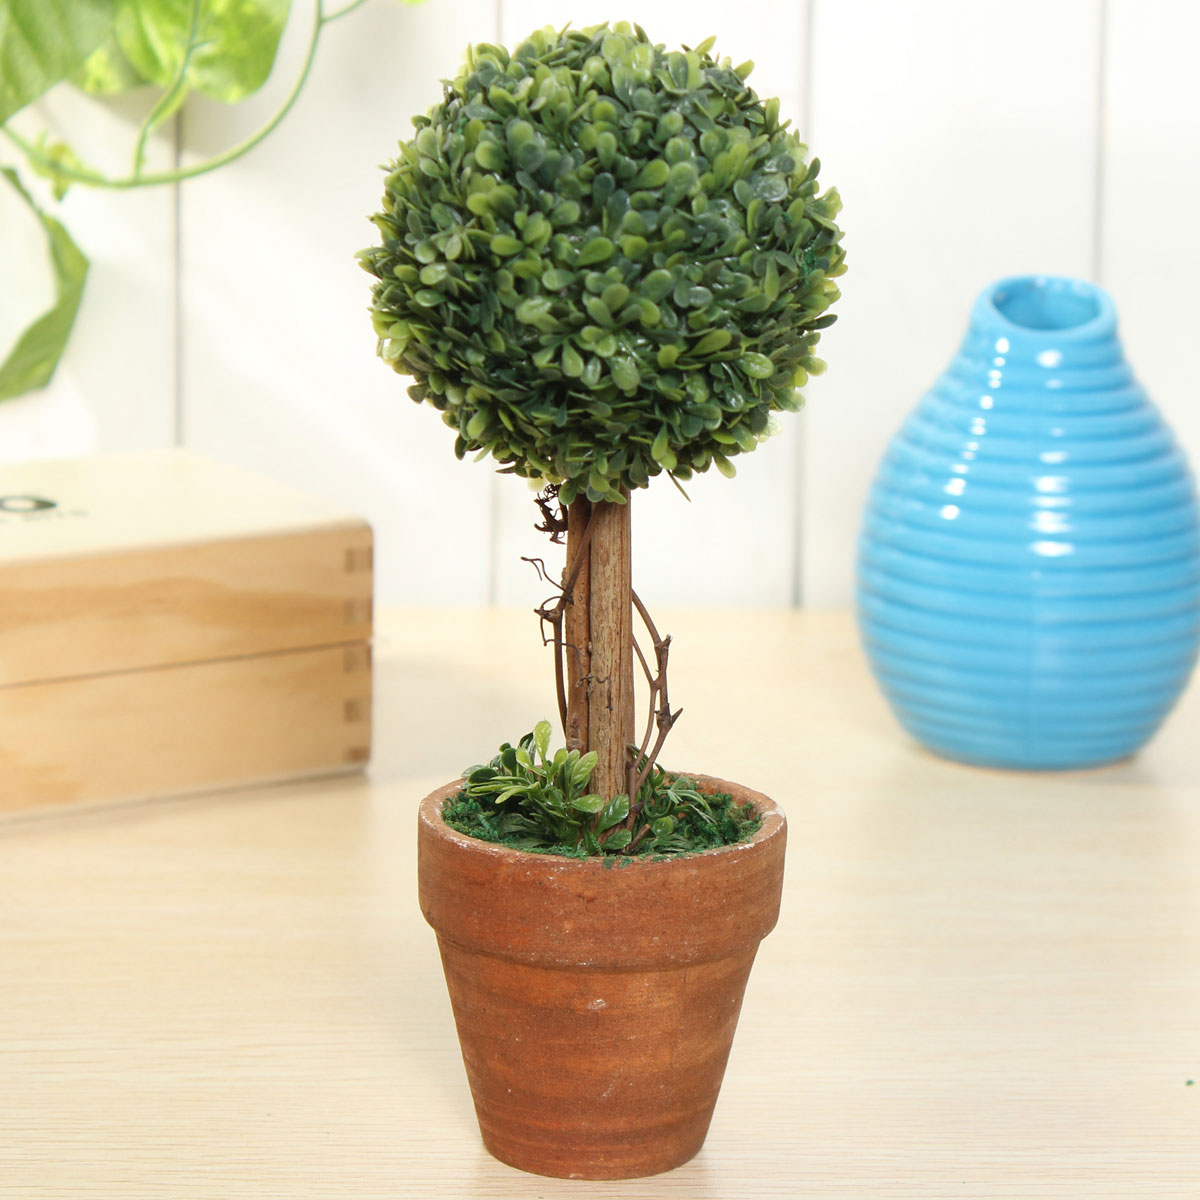 Artificial potted plant plastic garden grass ball topiary for Outdoor decorating with potted plants